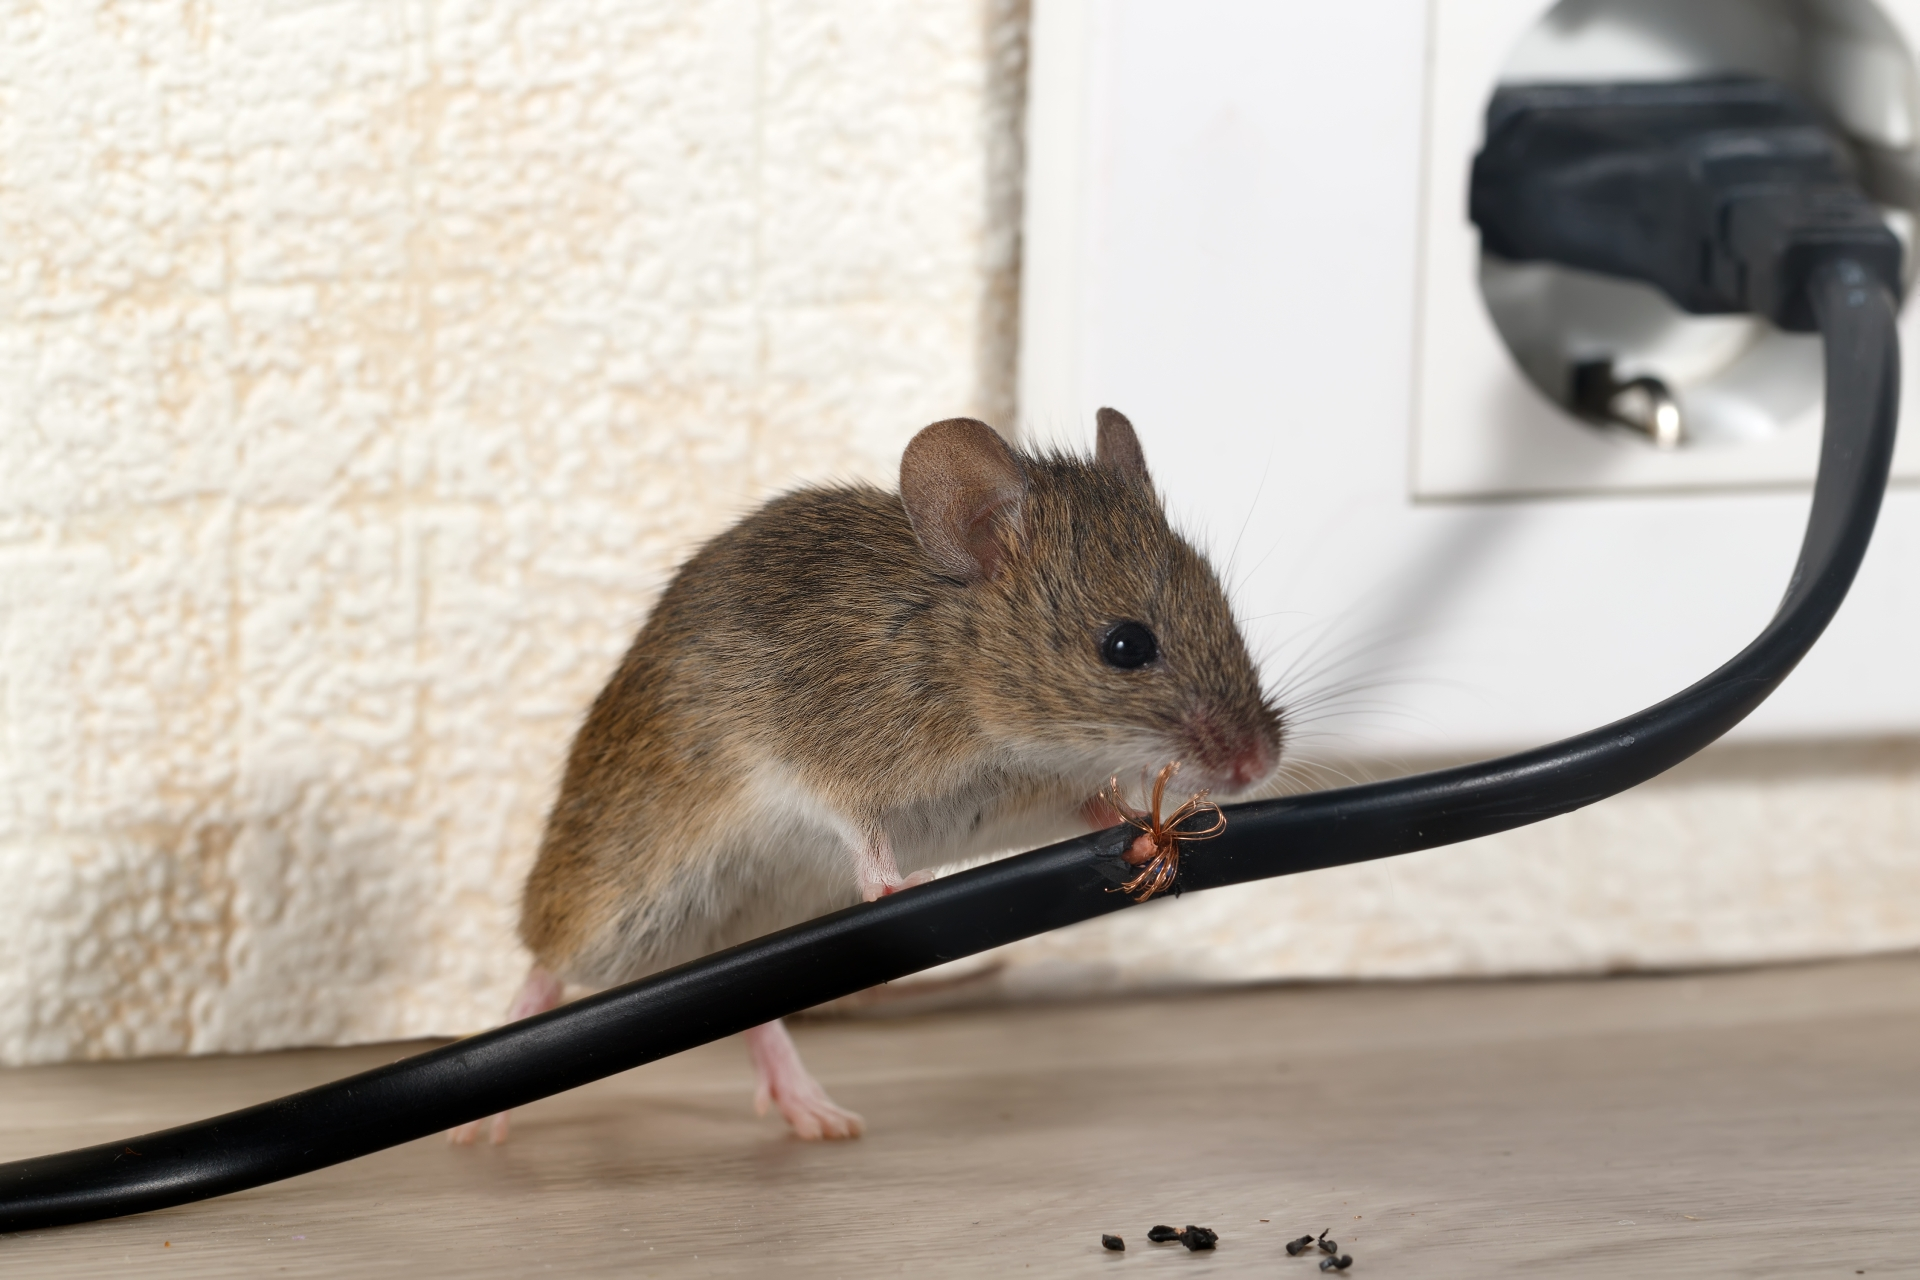 Mice Infestation, Pest Control in Alexandra Palace, Wood Green, N22. Call Now 020 8166 9746